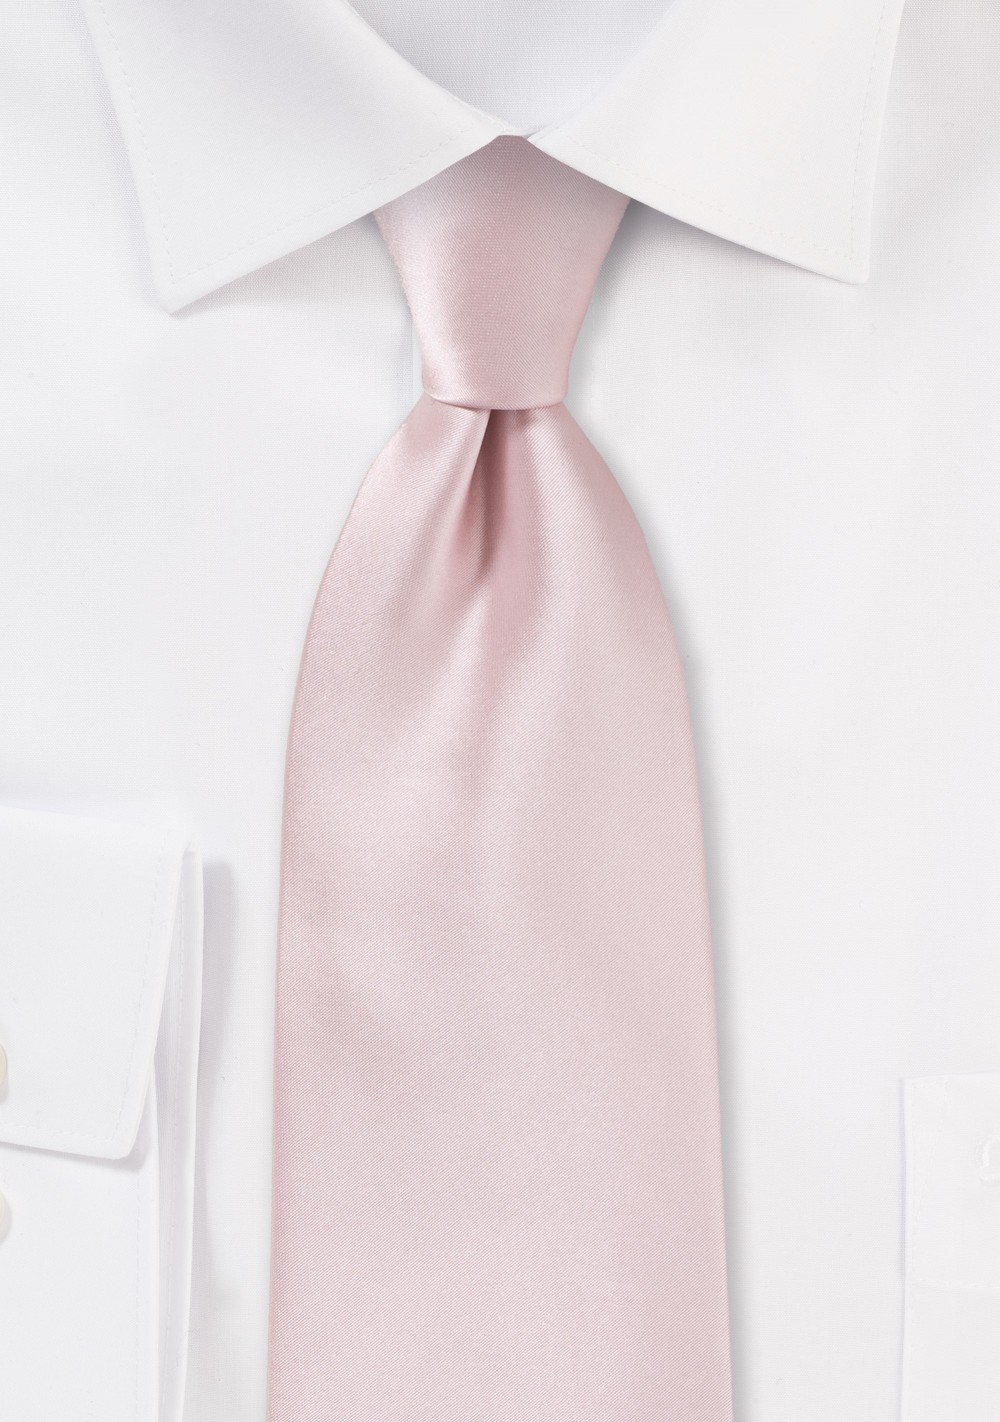 Elegant Men's Tie in Blush